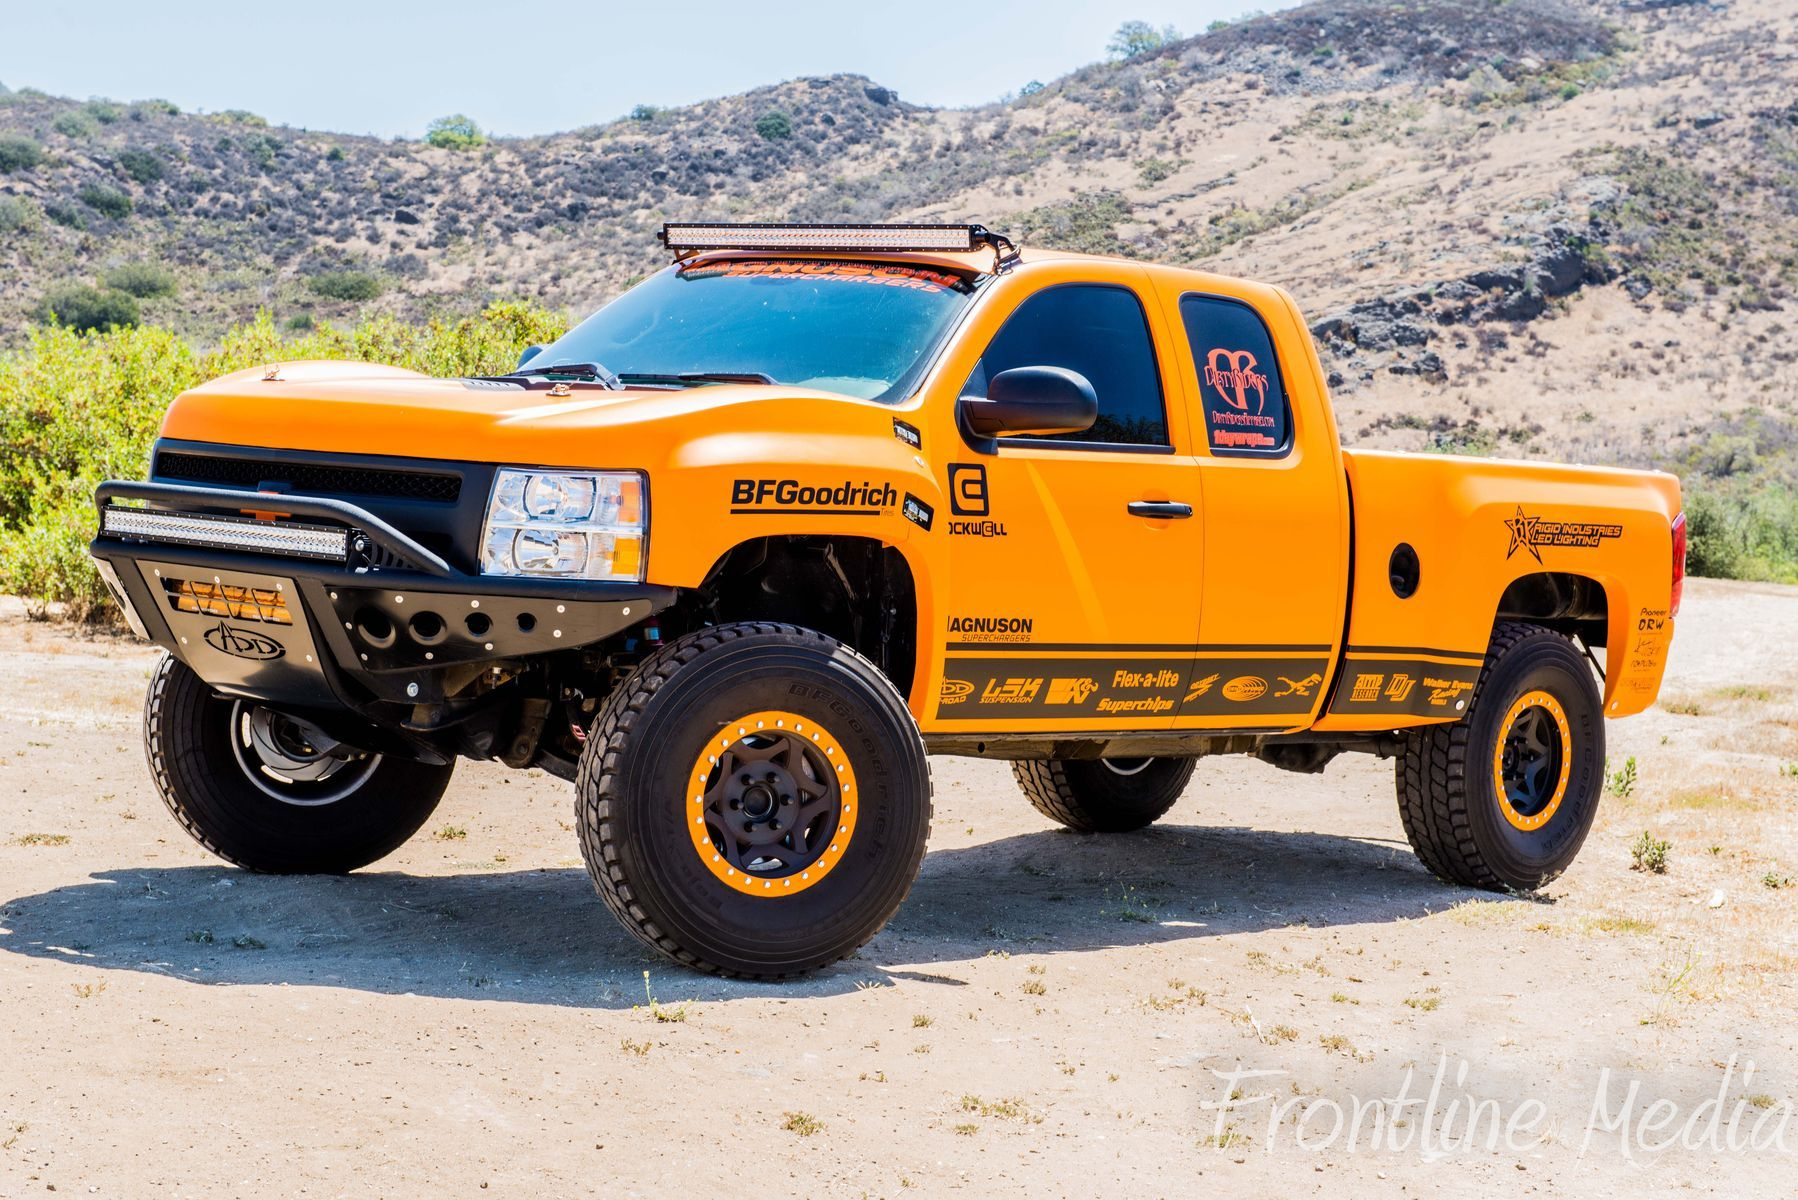 2012 Chevrolet Silverado 1500 | Chevy Silverado - Childrens Hospital Project